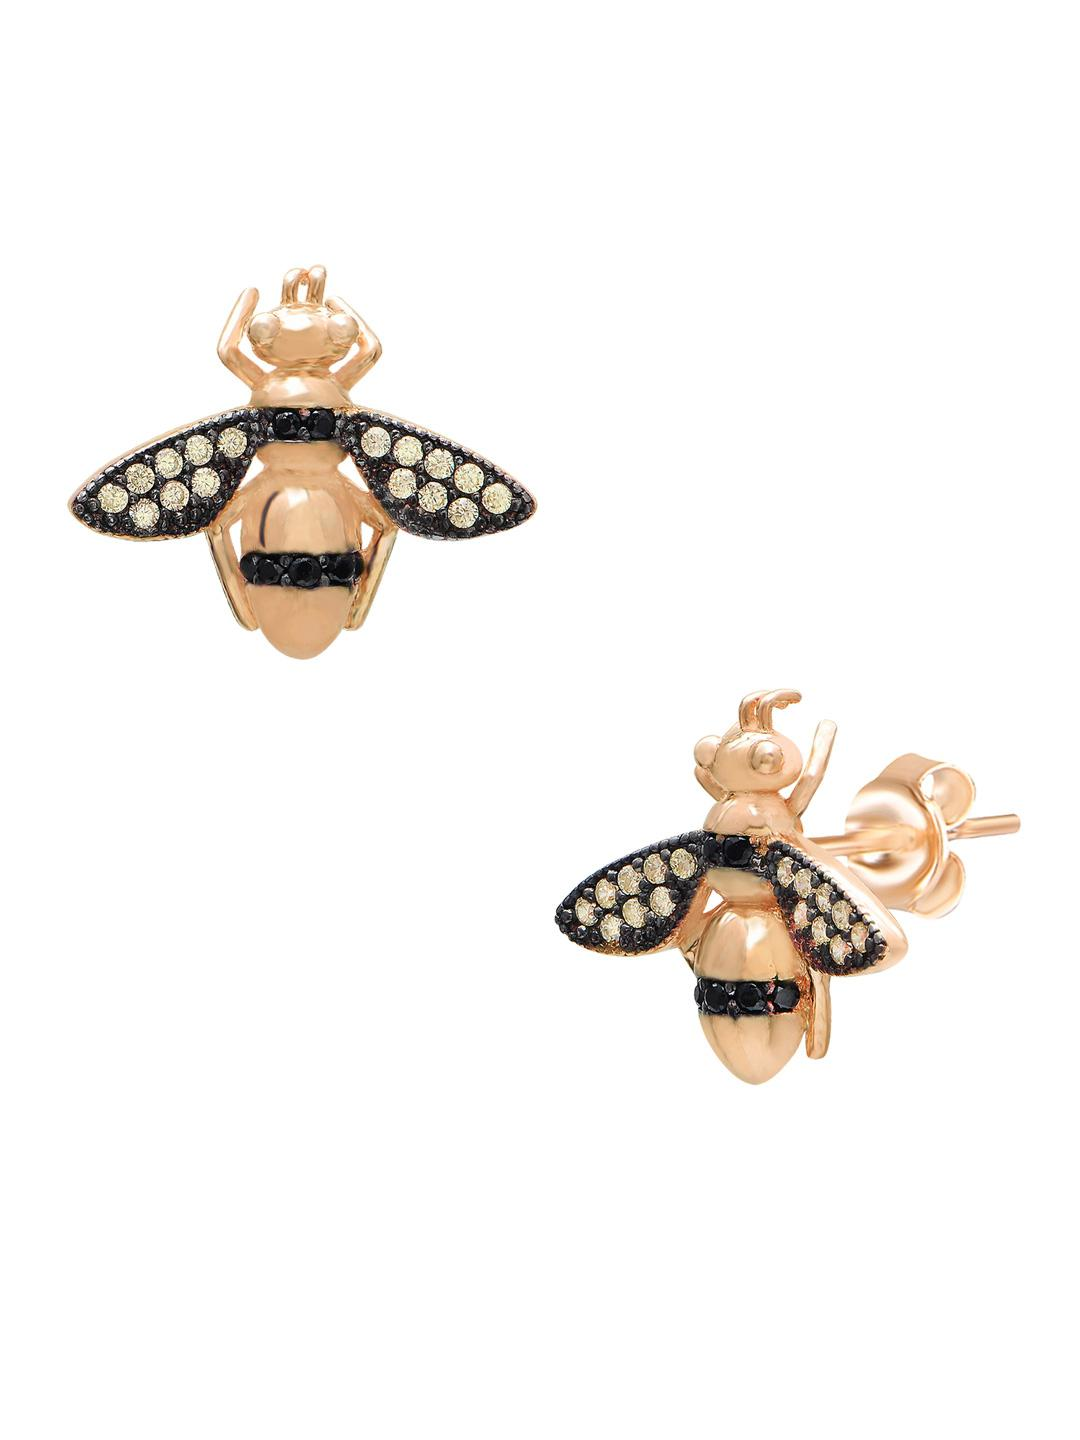 screw gold fine products earrings jewelry and brand dangler find goldshine watches at online hallmarked back beauty stud